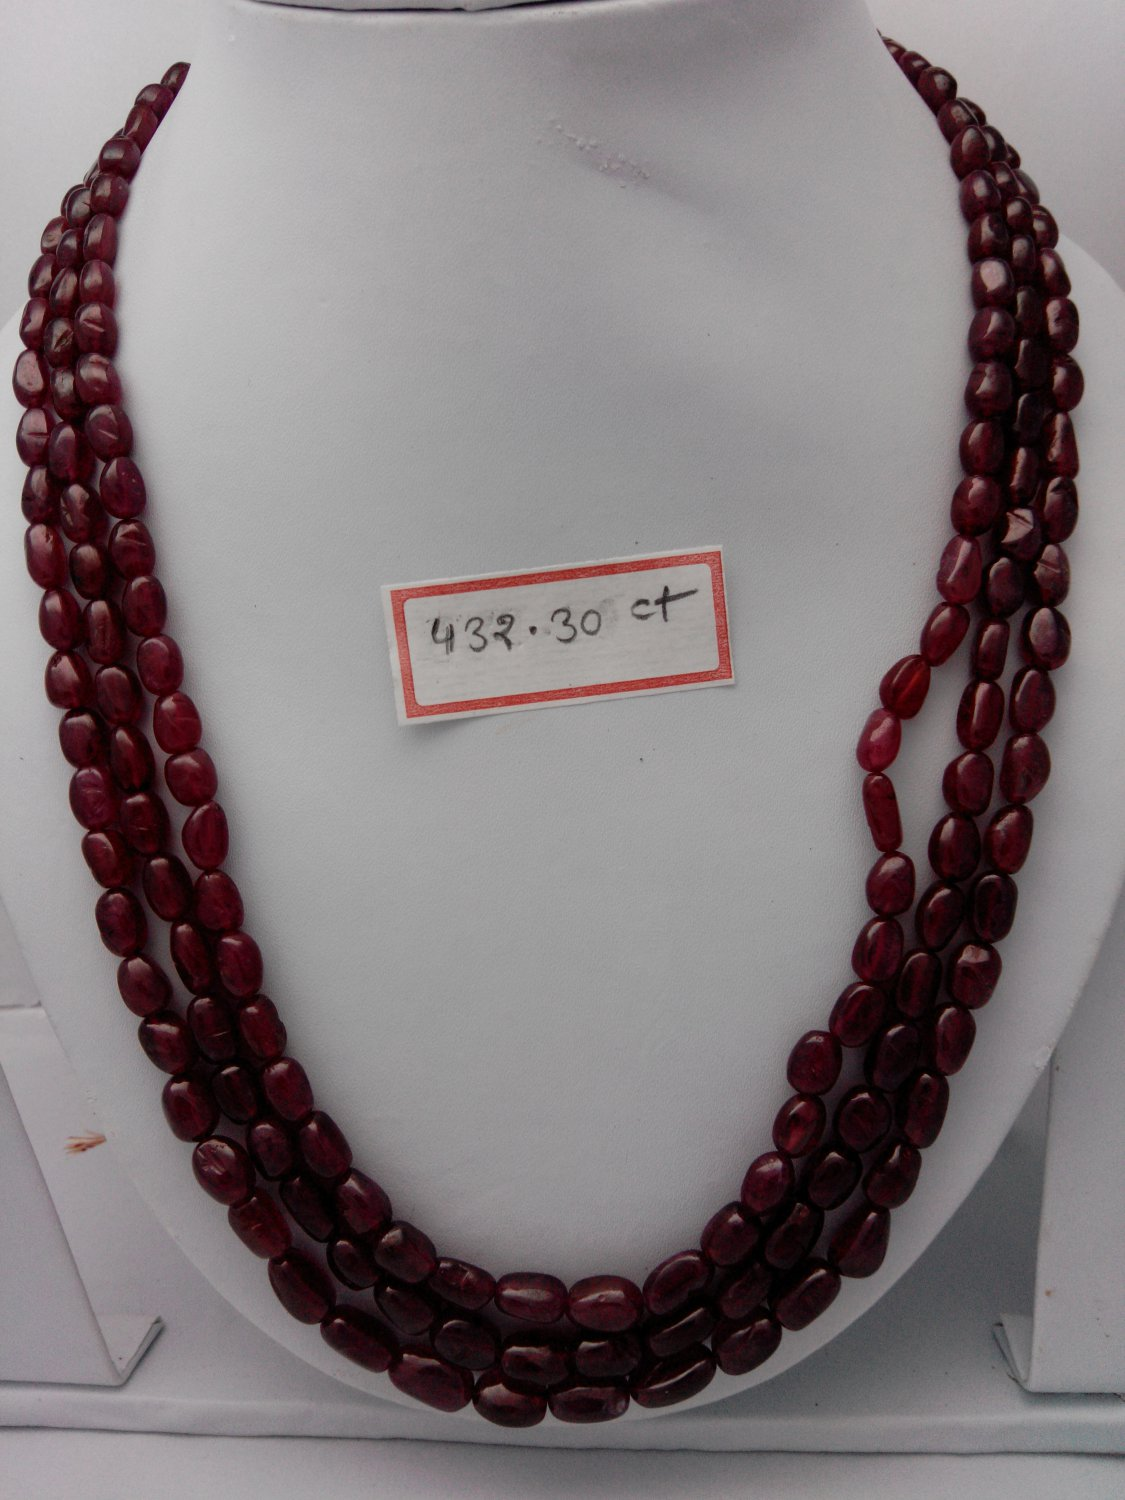 Certified Fissure Filled Ruby necklace of 432.30 cts Fancy Oval briolettes plane Polish